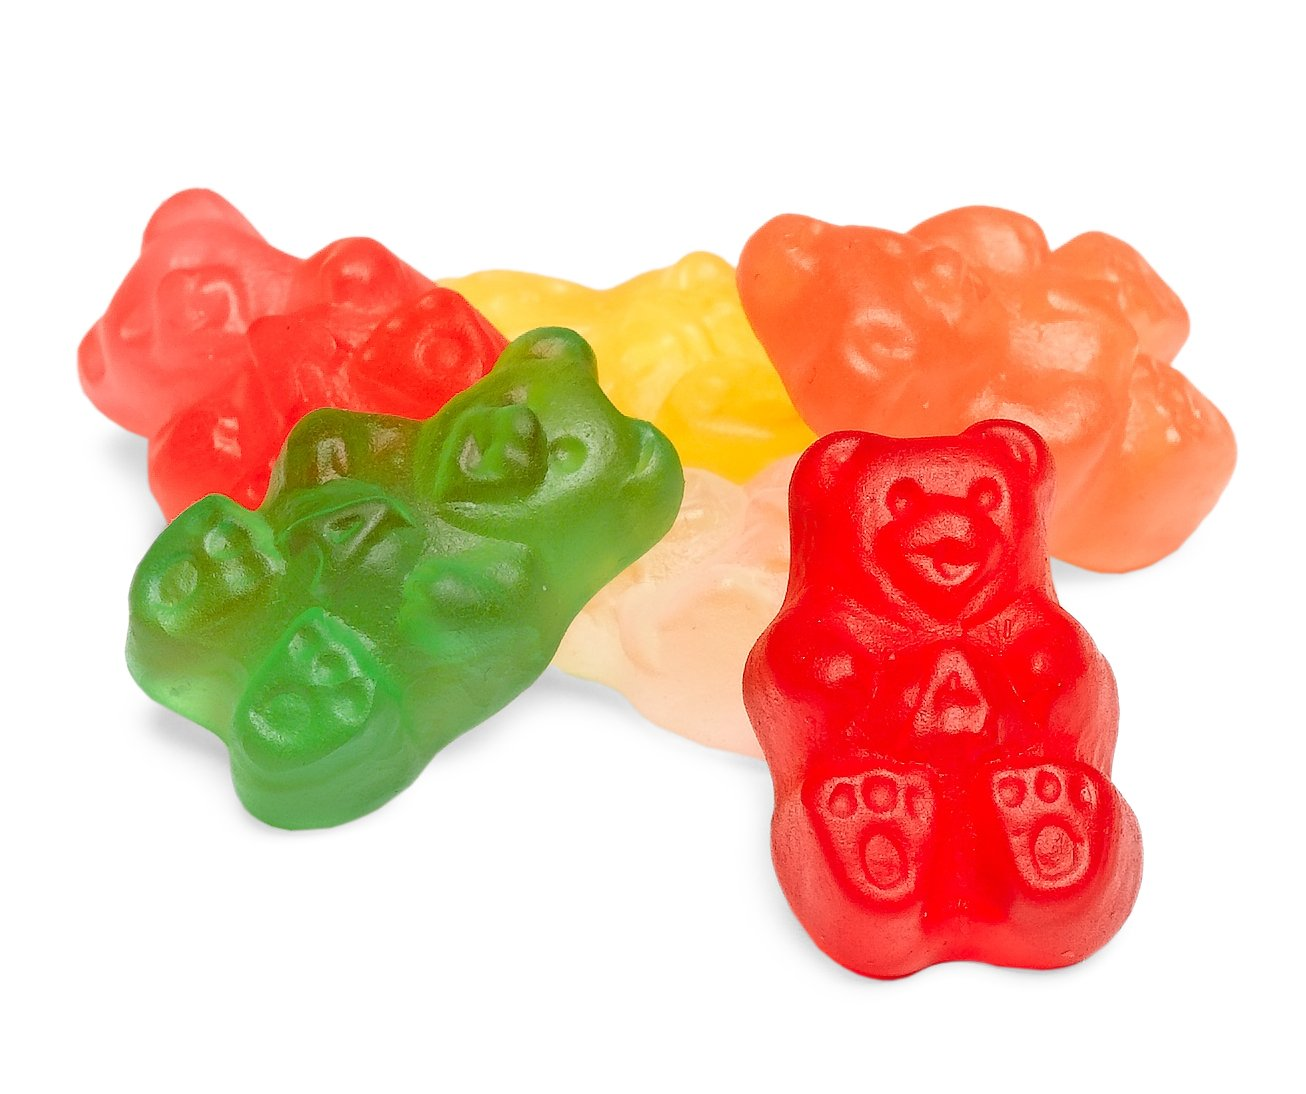 Albanese Assorted Gummi Bears, Sugar Free, 5-Pound Bags (Pack of 2)